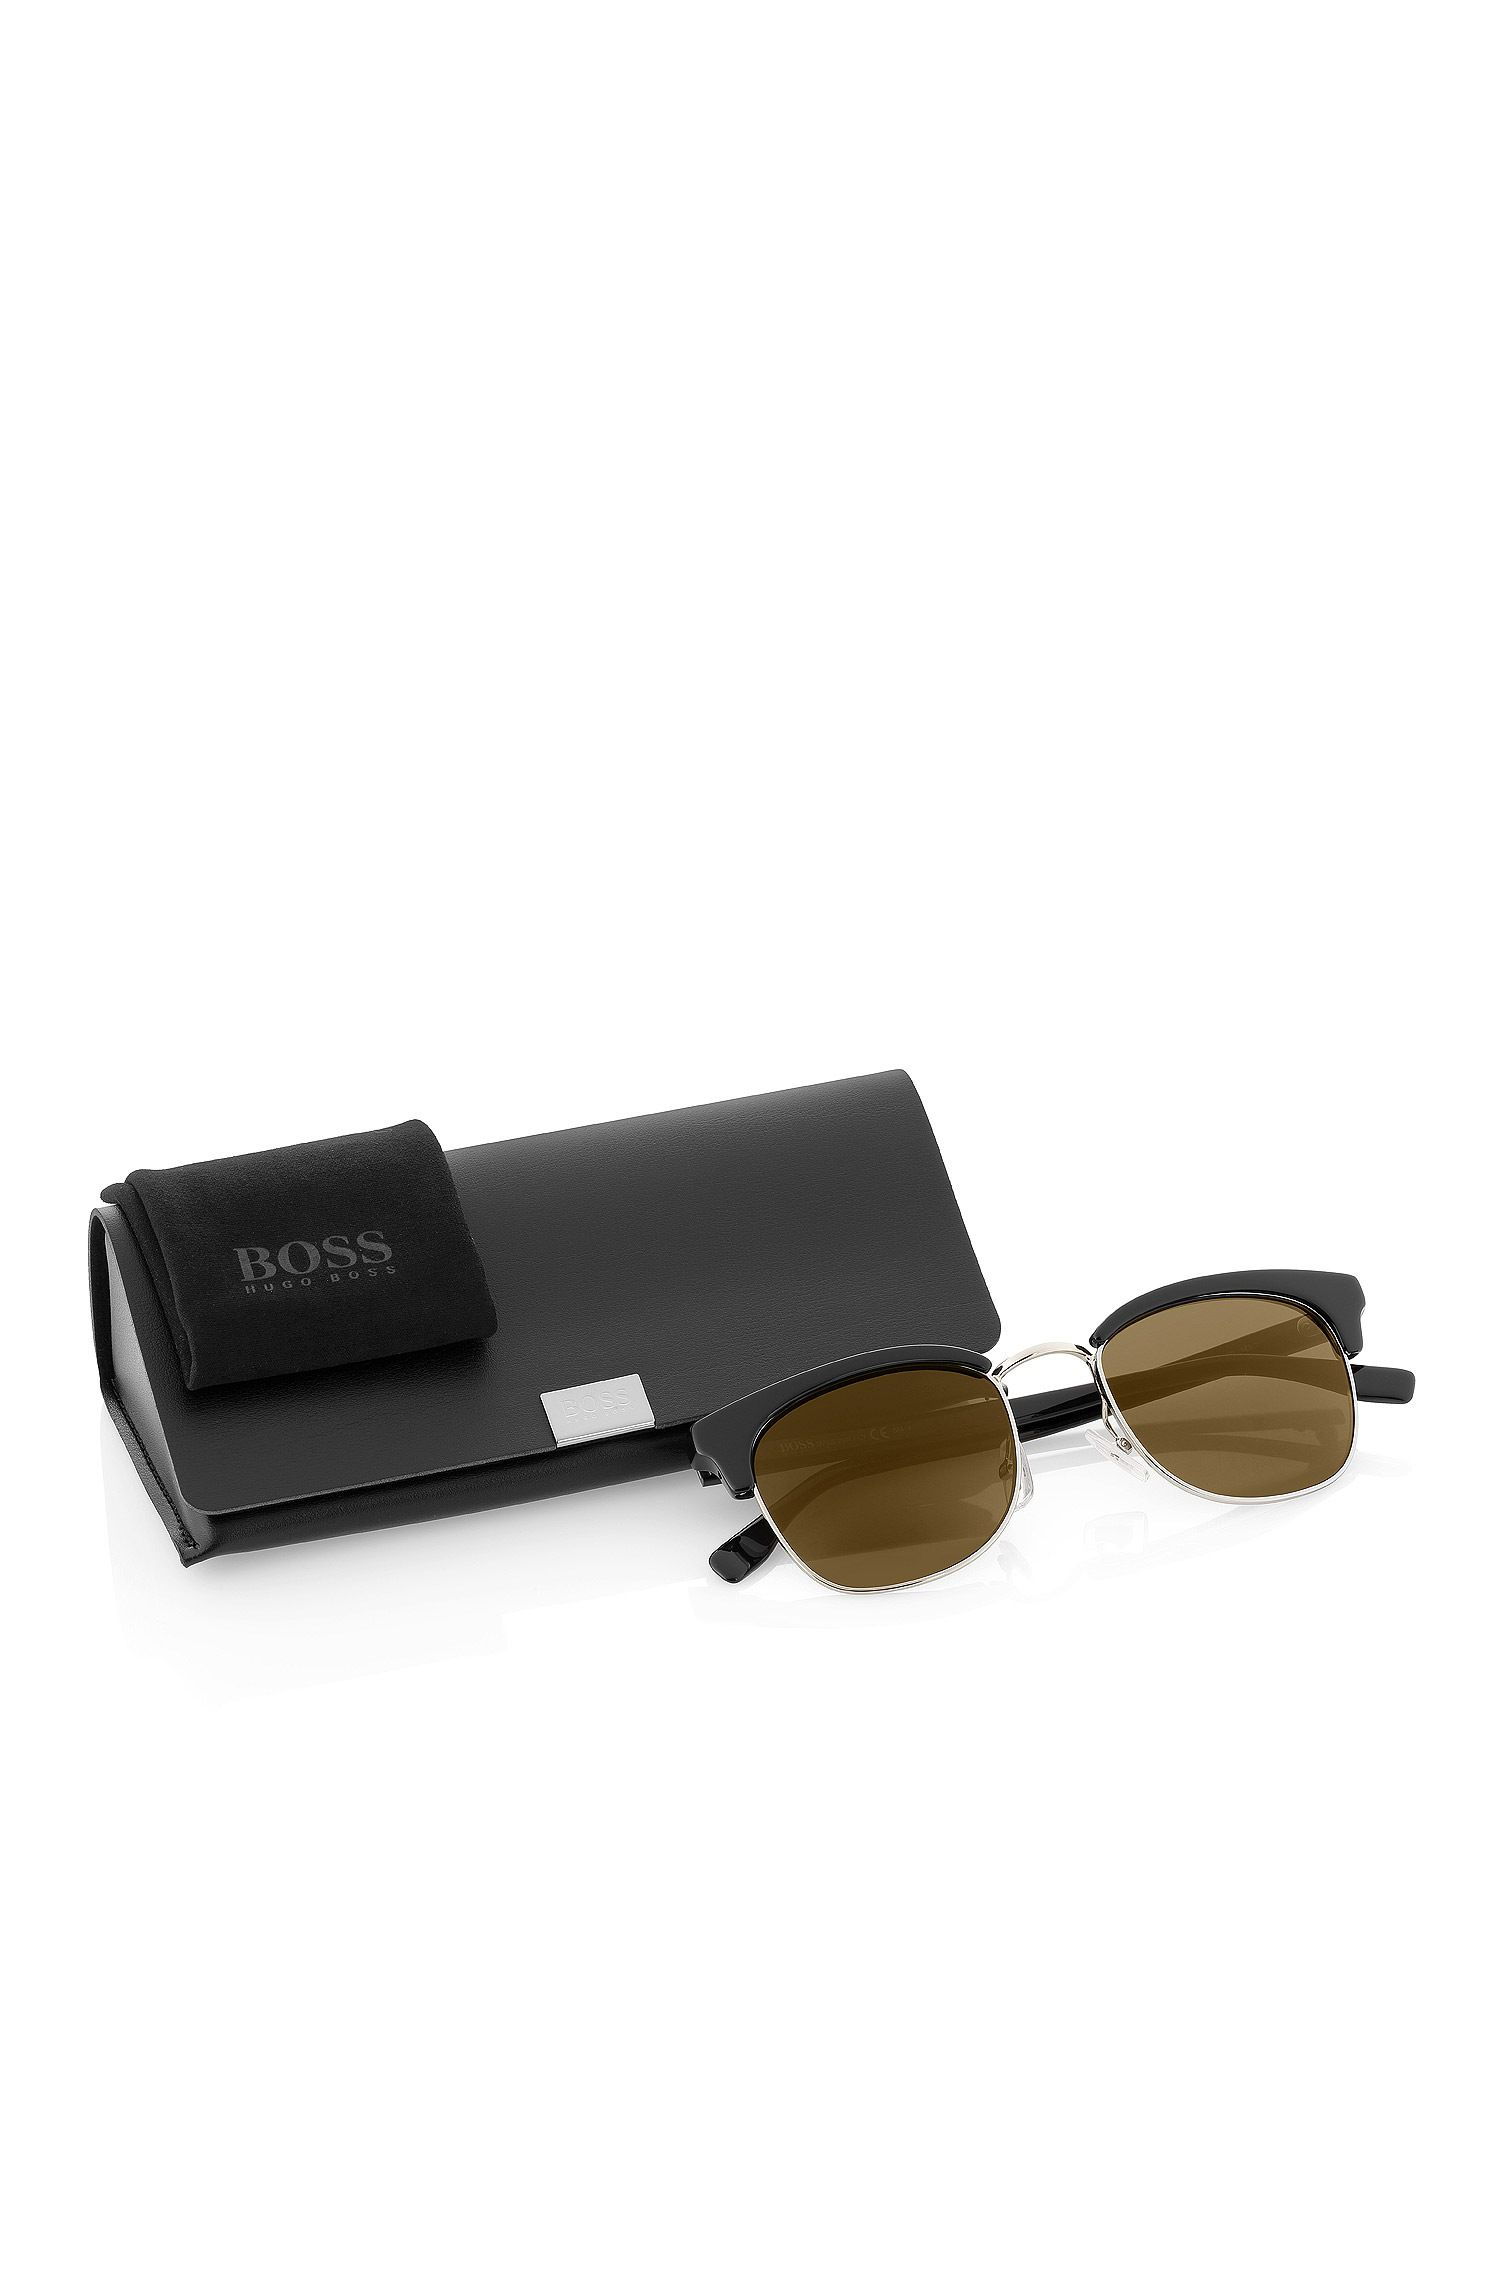 'BOSS 0667S' | Brown Lens Clubmaster Sunglasses , Assorted-Pre-Pack